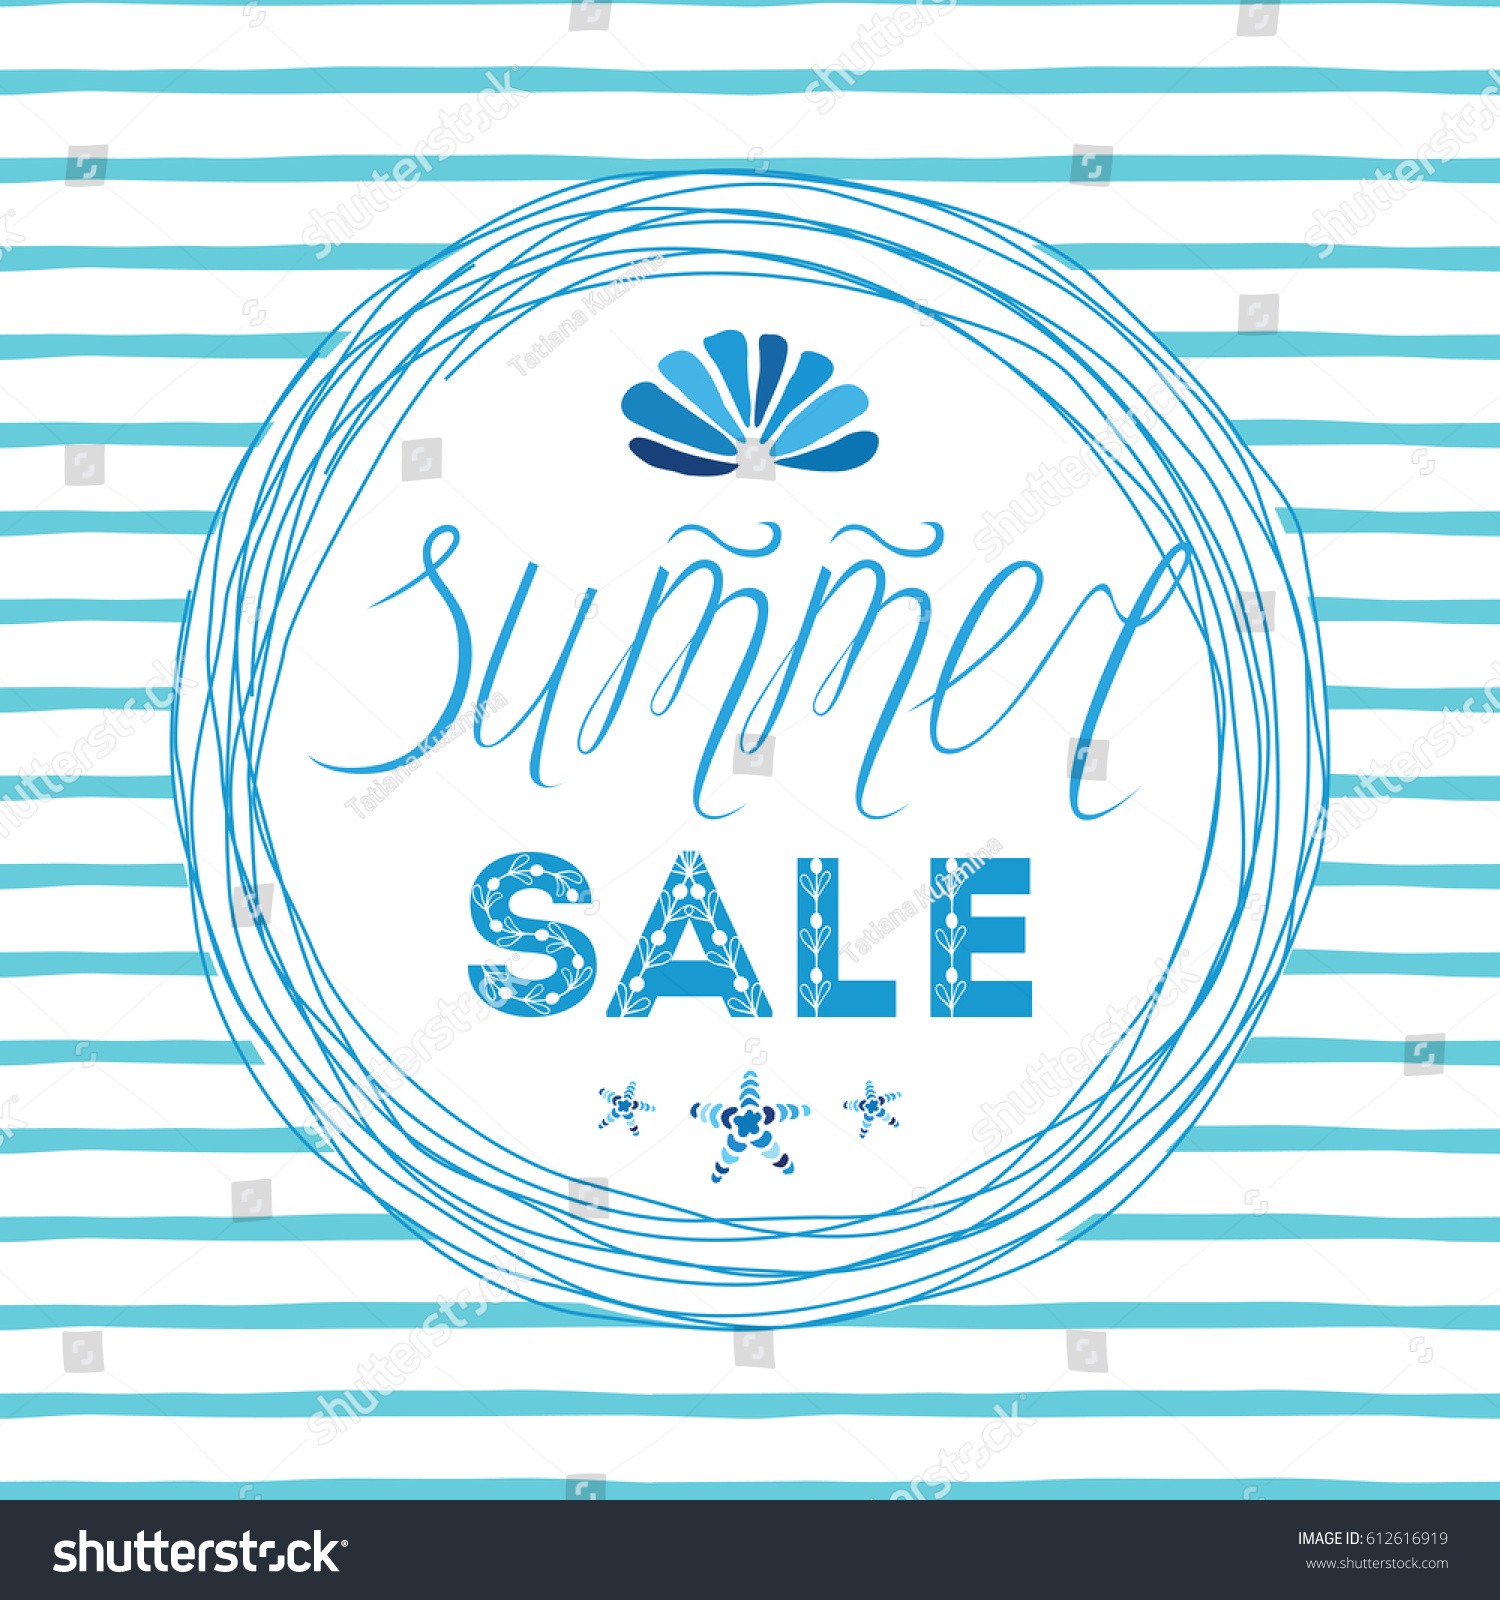 Vector summer sales hand drawn template stock vector 612616919 vector summer sales hand drawn template made on blue ocean colors with calligraphy text hand pronofoot35fo Choice Image